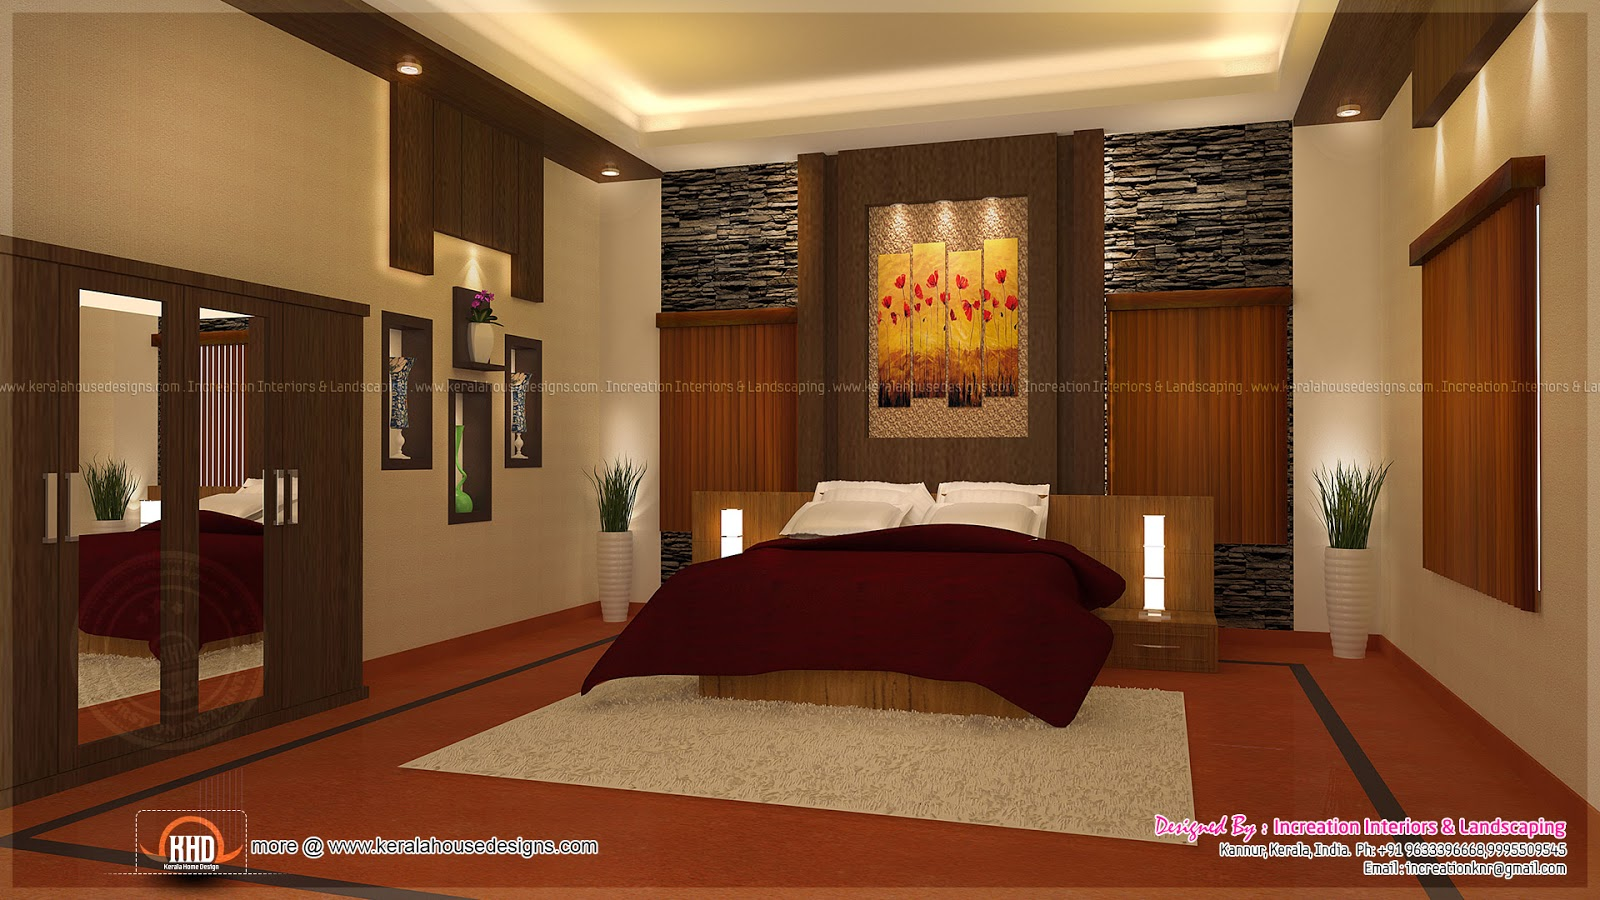 Master bedroom interior for Interior design images for bedrooms